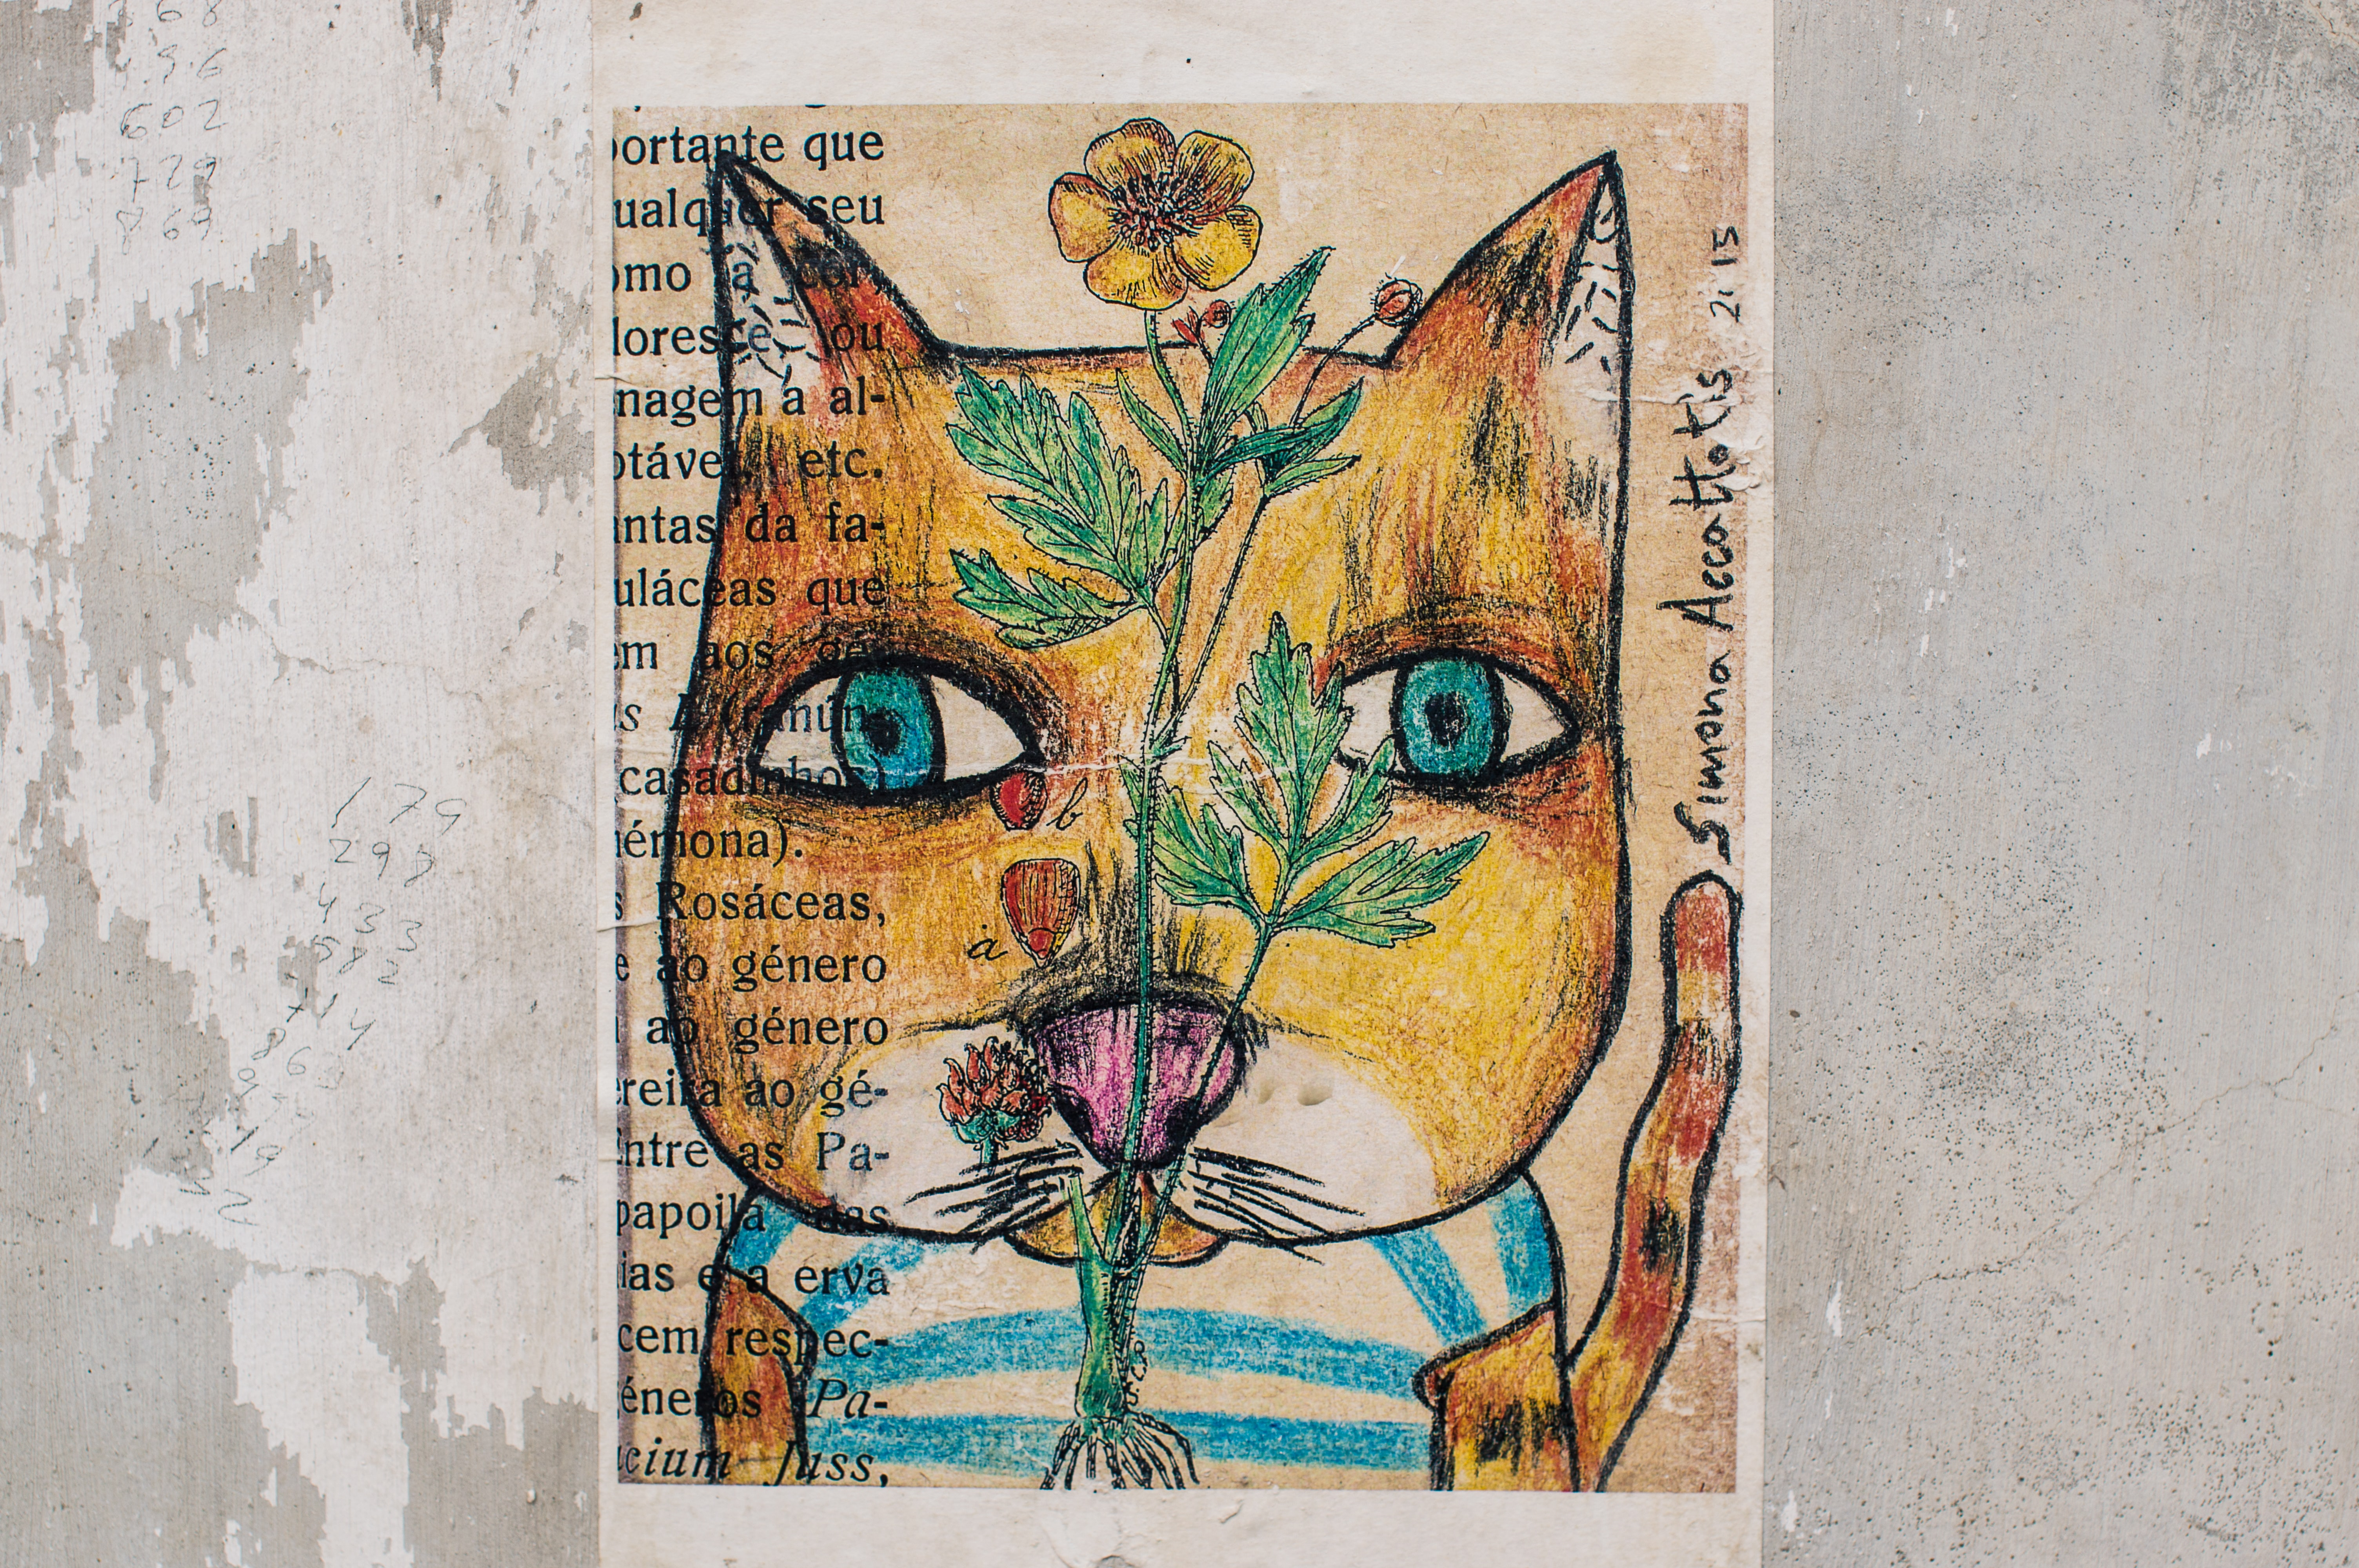 Abstract street art painting of cat with blue eyes and flower on textured gray wall